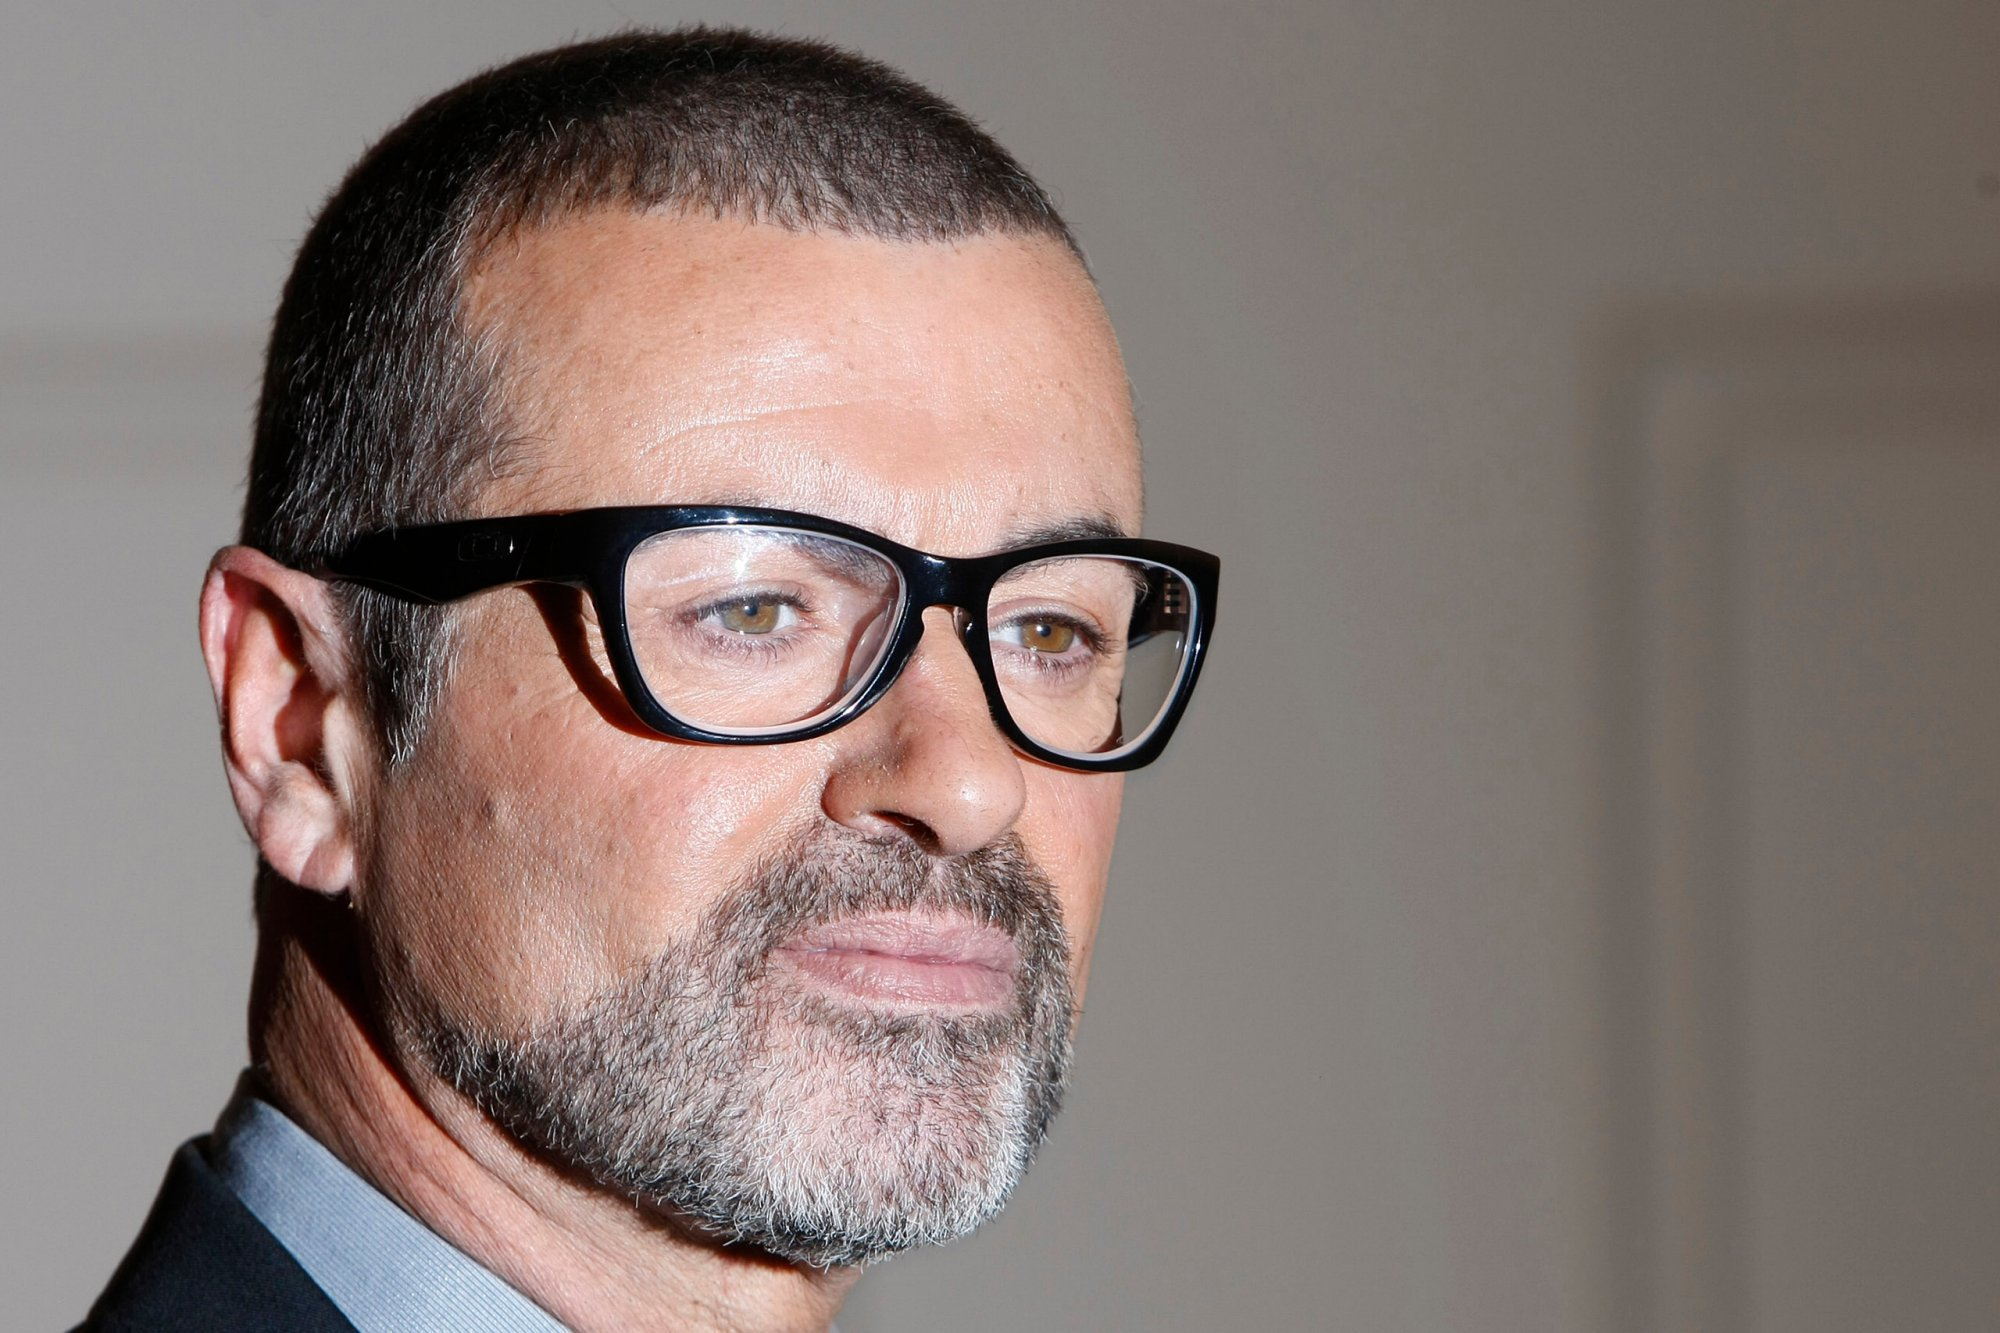 george michael wearing glasses wallpaper 623